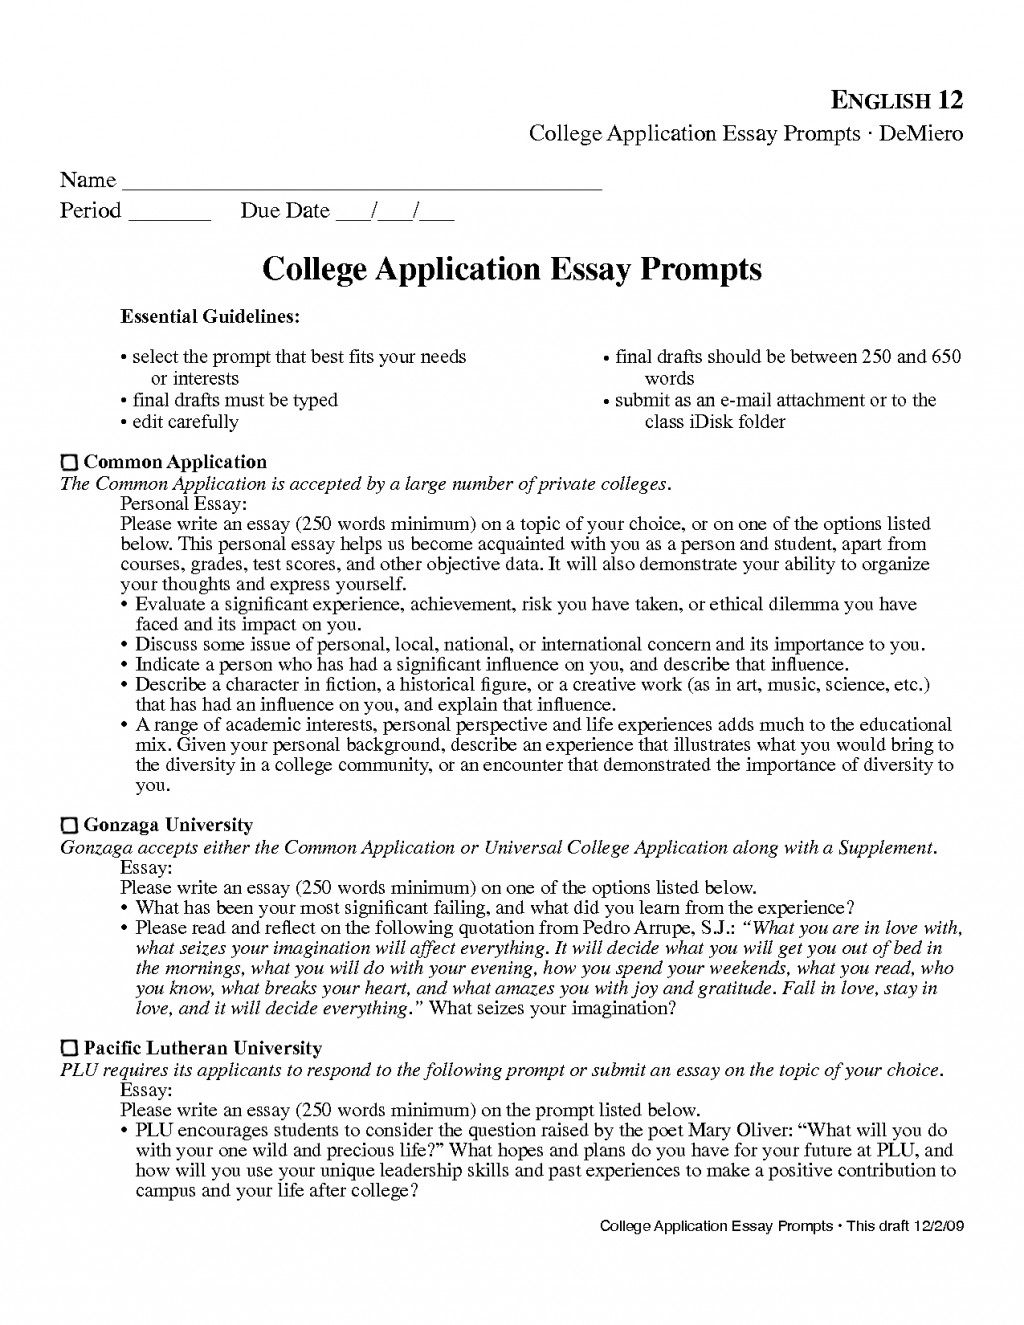 003 Essay Example Common App Prompt Prompts Provided By Application College Confidential Physic Minimalistics Co Inside Format Unusual 1 Examples 3 4 Large